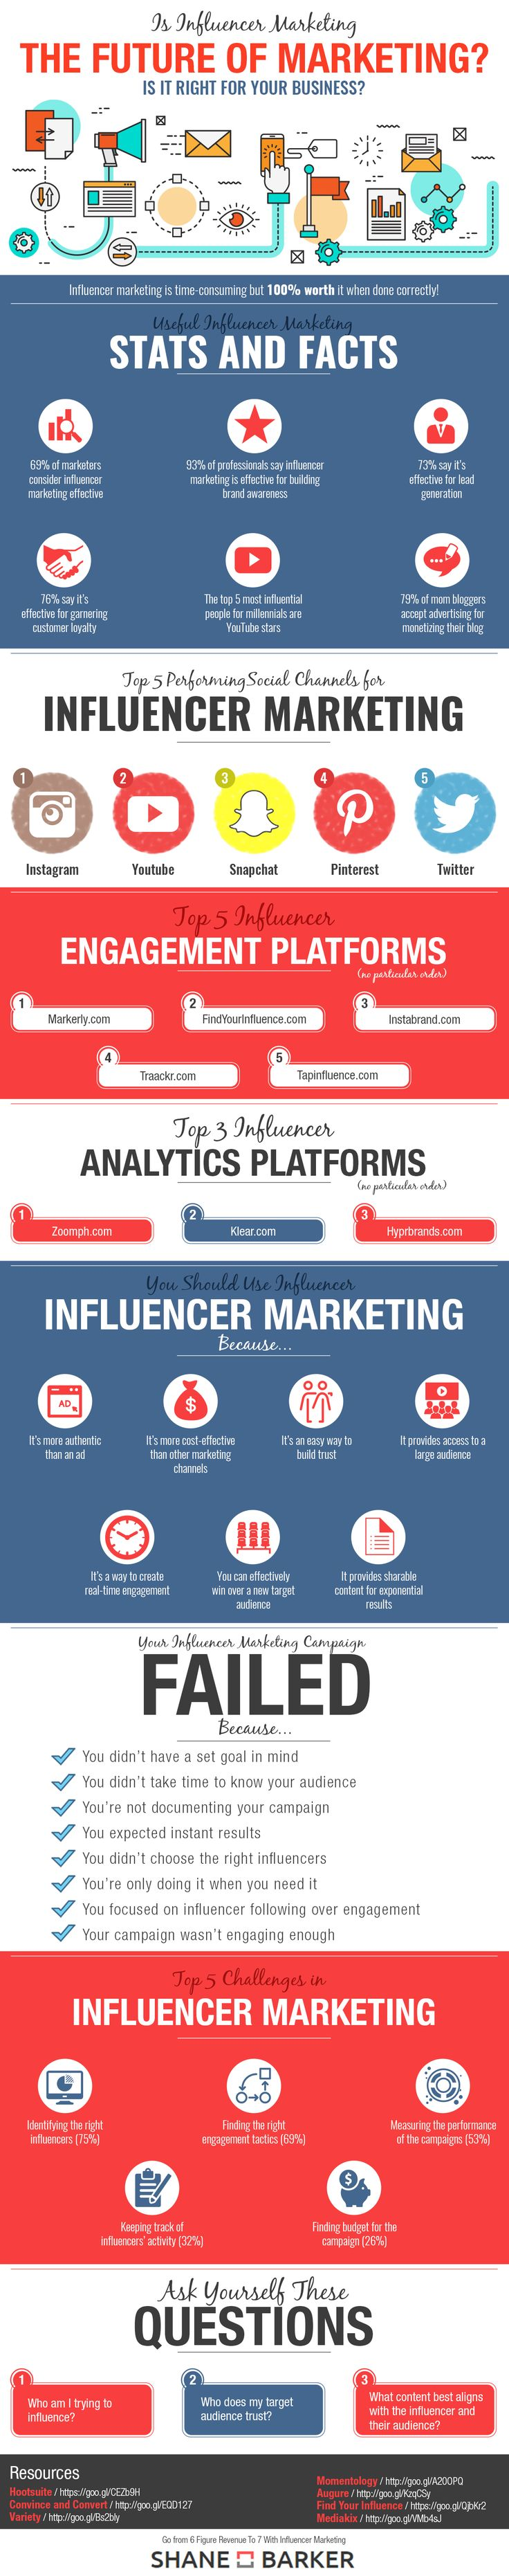 Is Influencer Marketing the Future of Marketing (infographic)